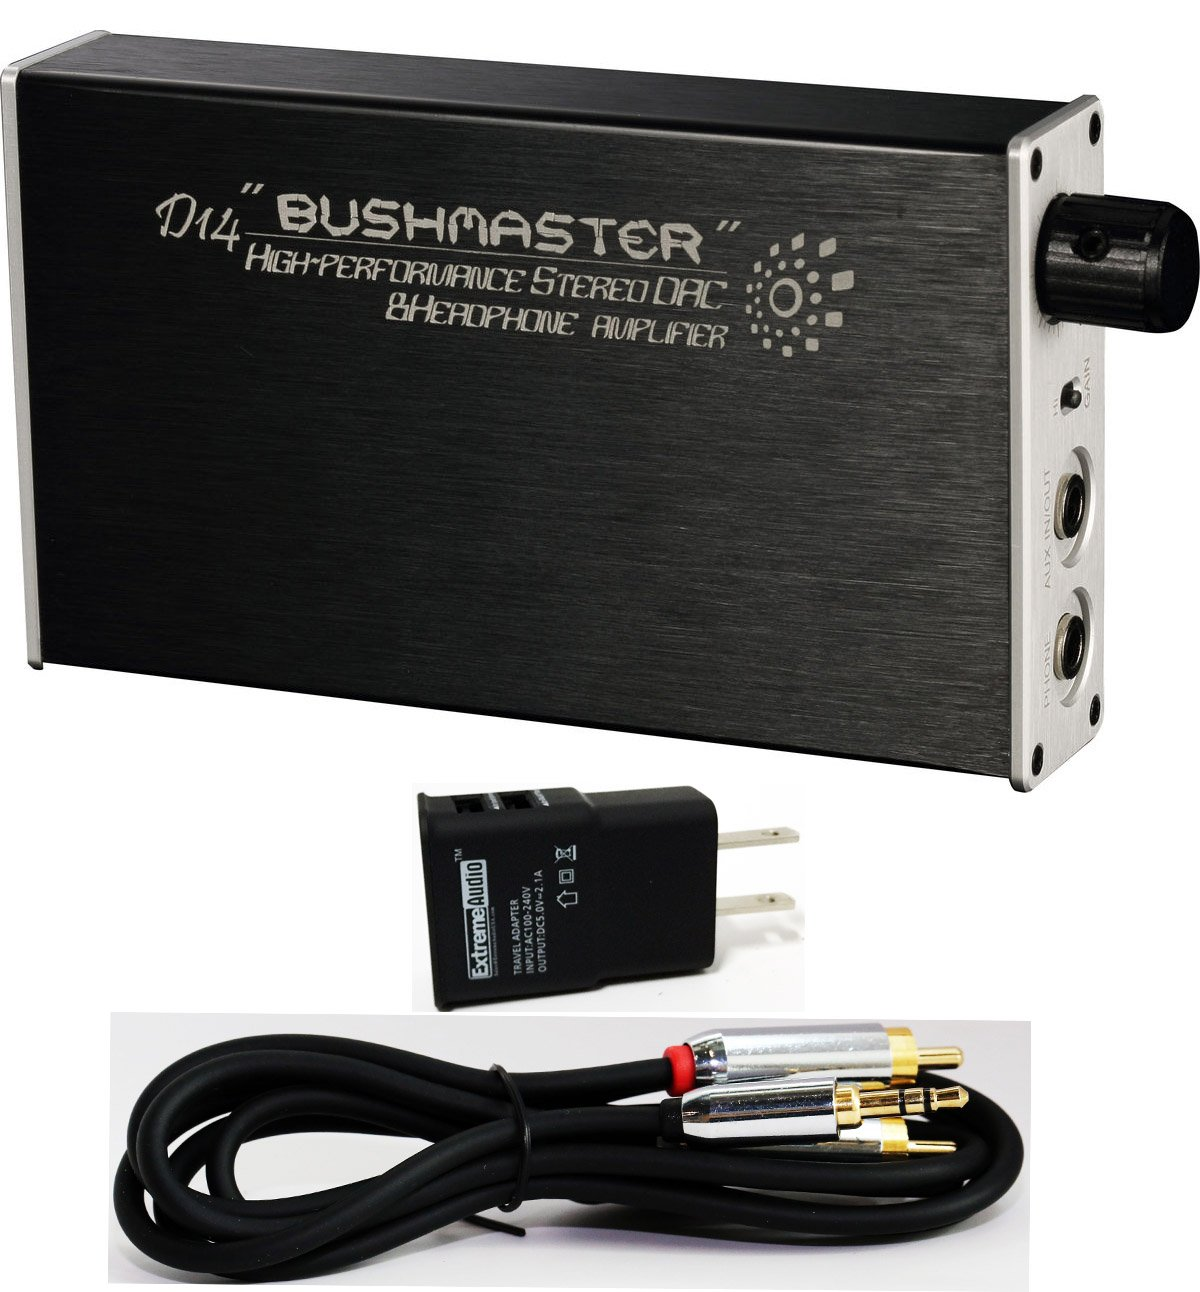 iBasso D14 Bushmaster Portable Headphone Amplifier/DAC with Optical & 3.5mm Stereo to RCA Connection Kit